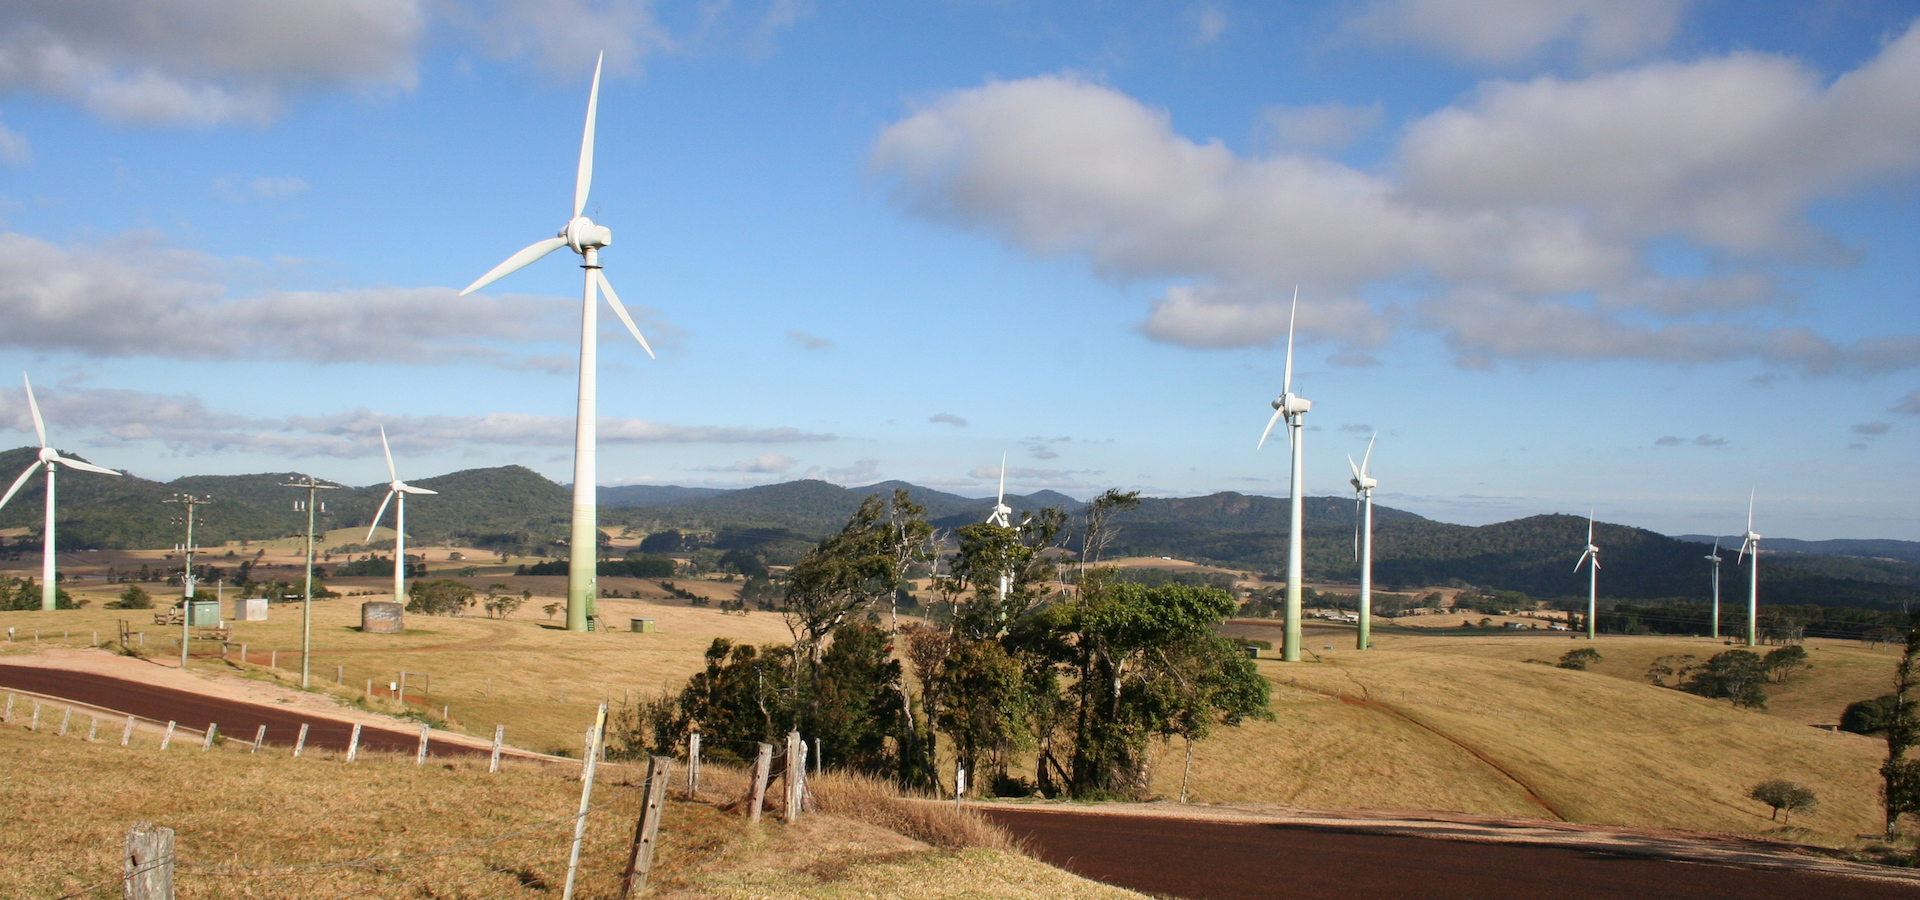 wind farm in Australia with mountains in the background